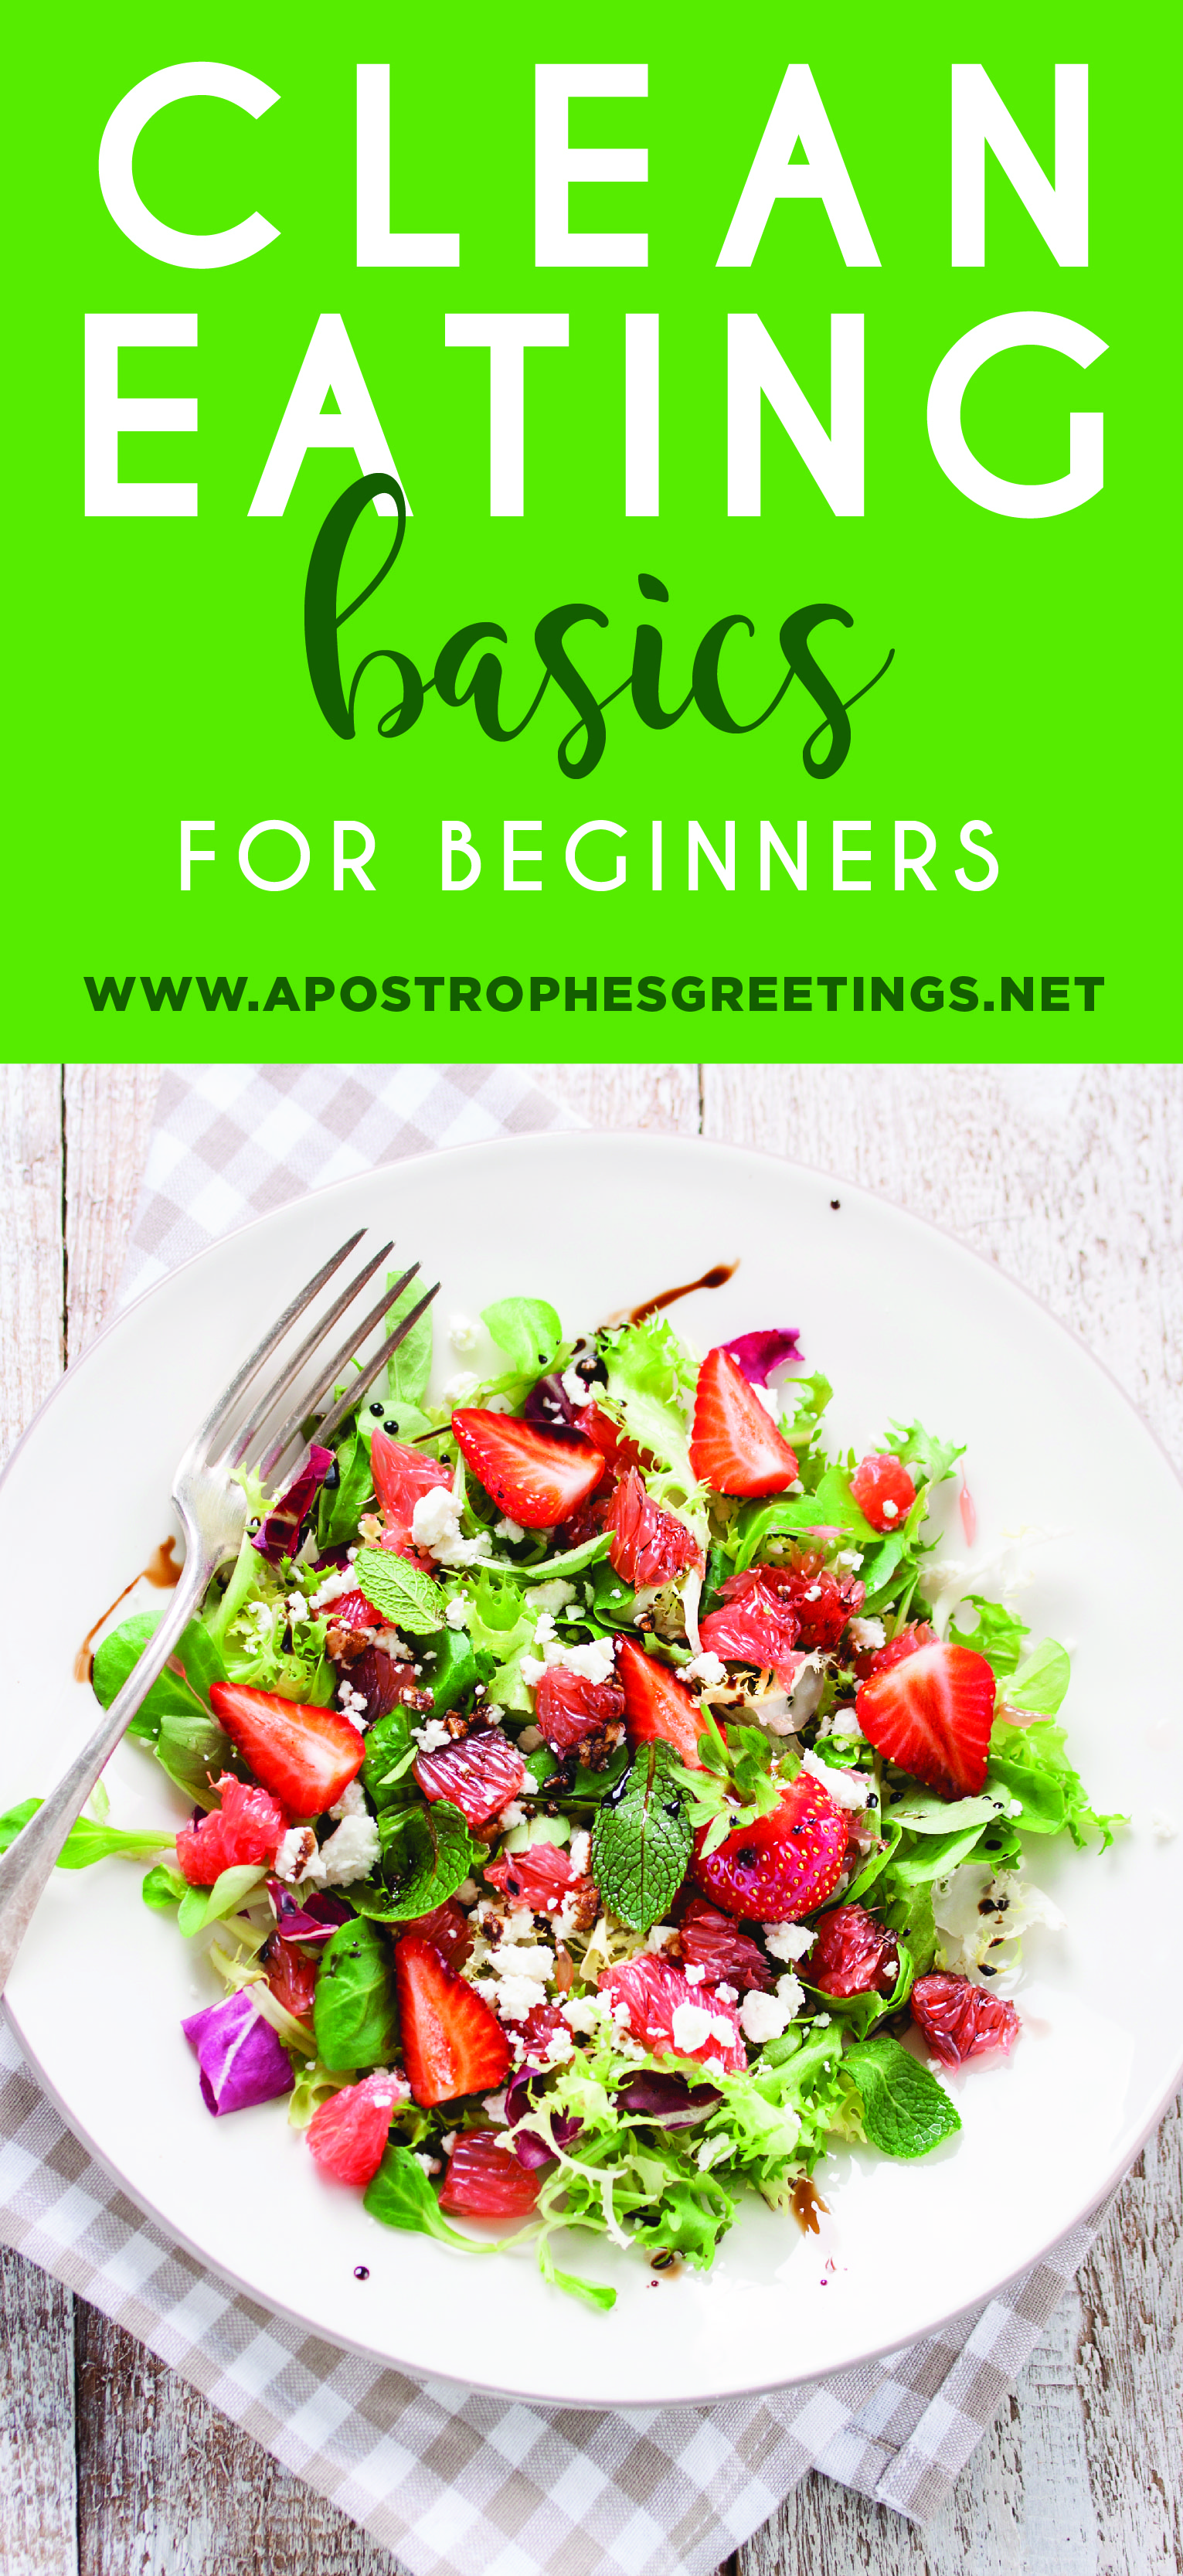 Clean Eating for Beginners pin-01.jpg